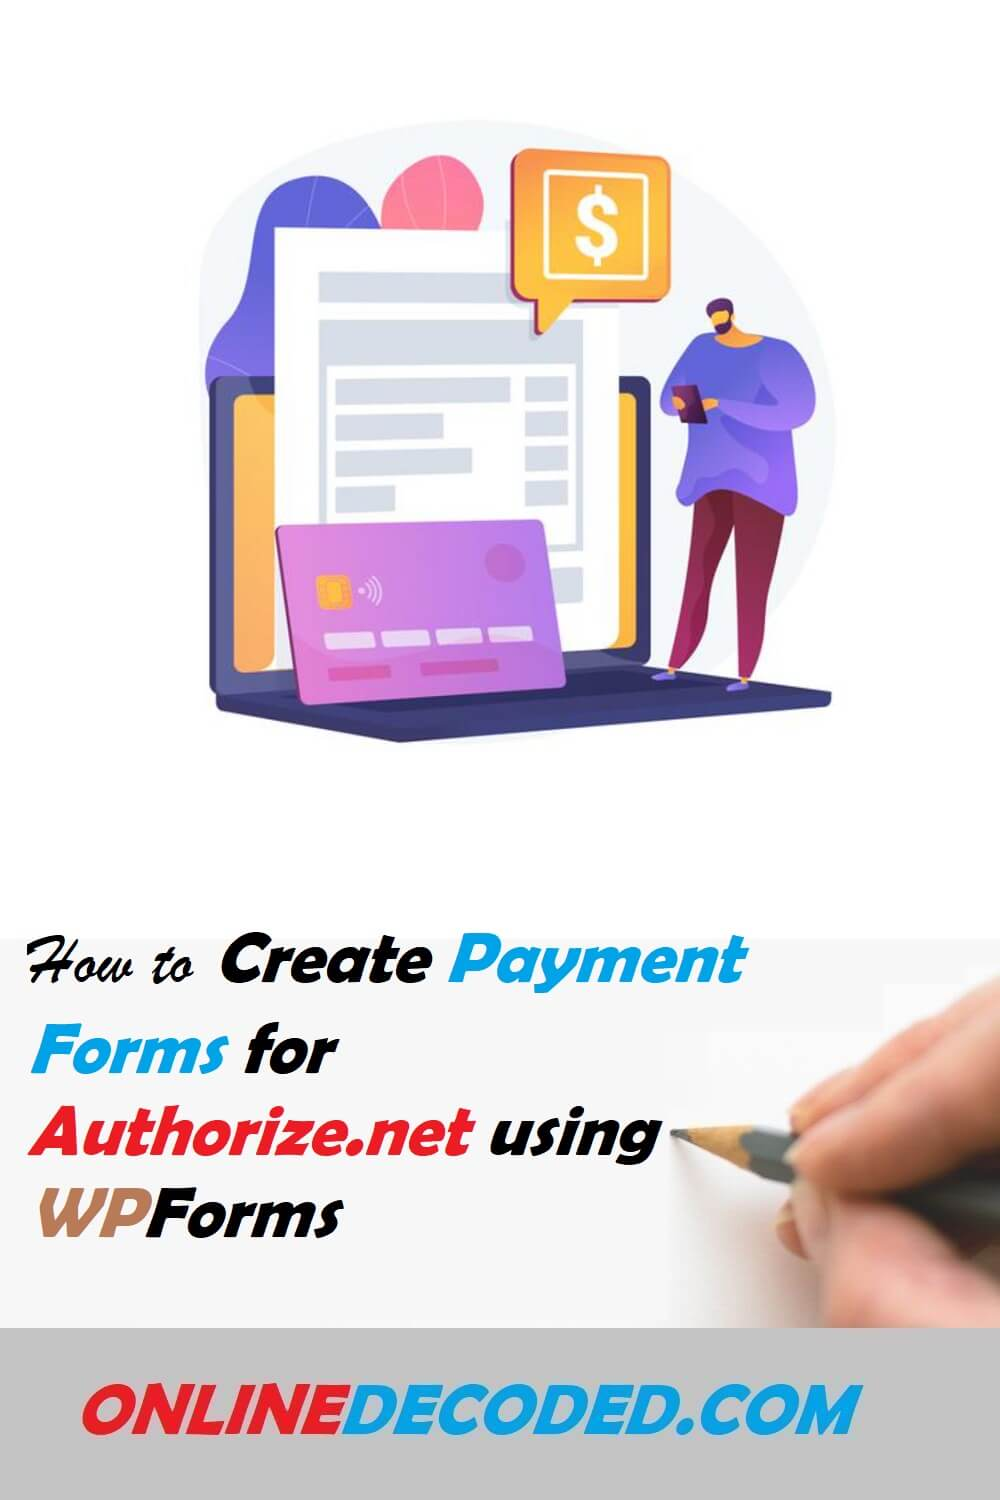 How To Create Payment Forms For Authorize.net Easily in 2021